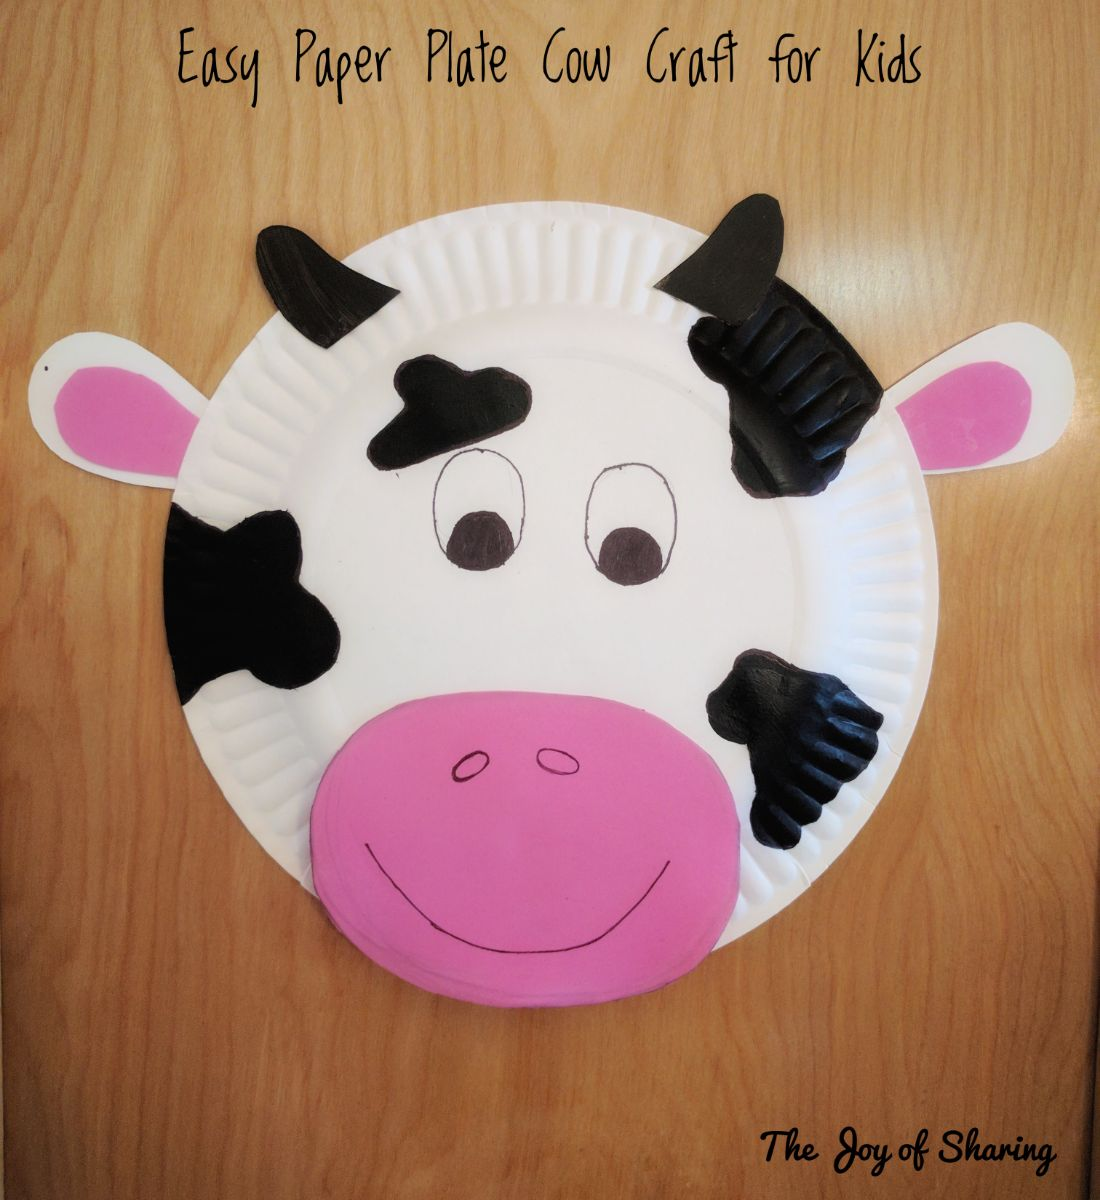 The Joy of Sharing: Paper Plate Cow Craft